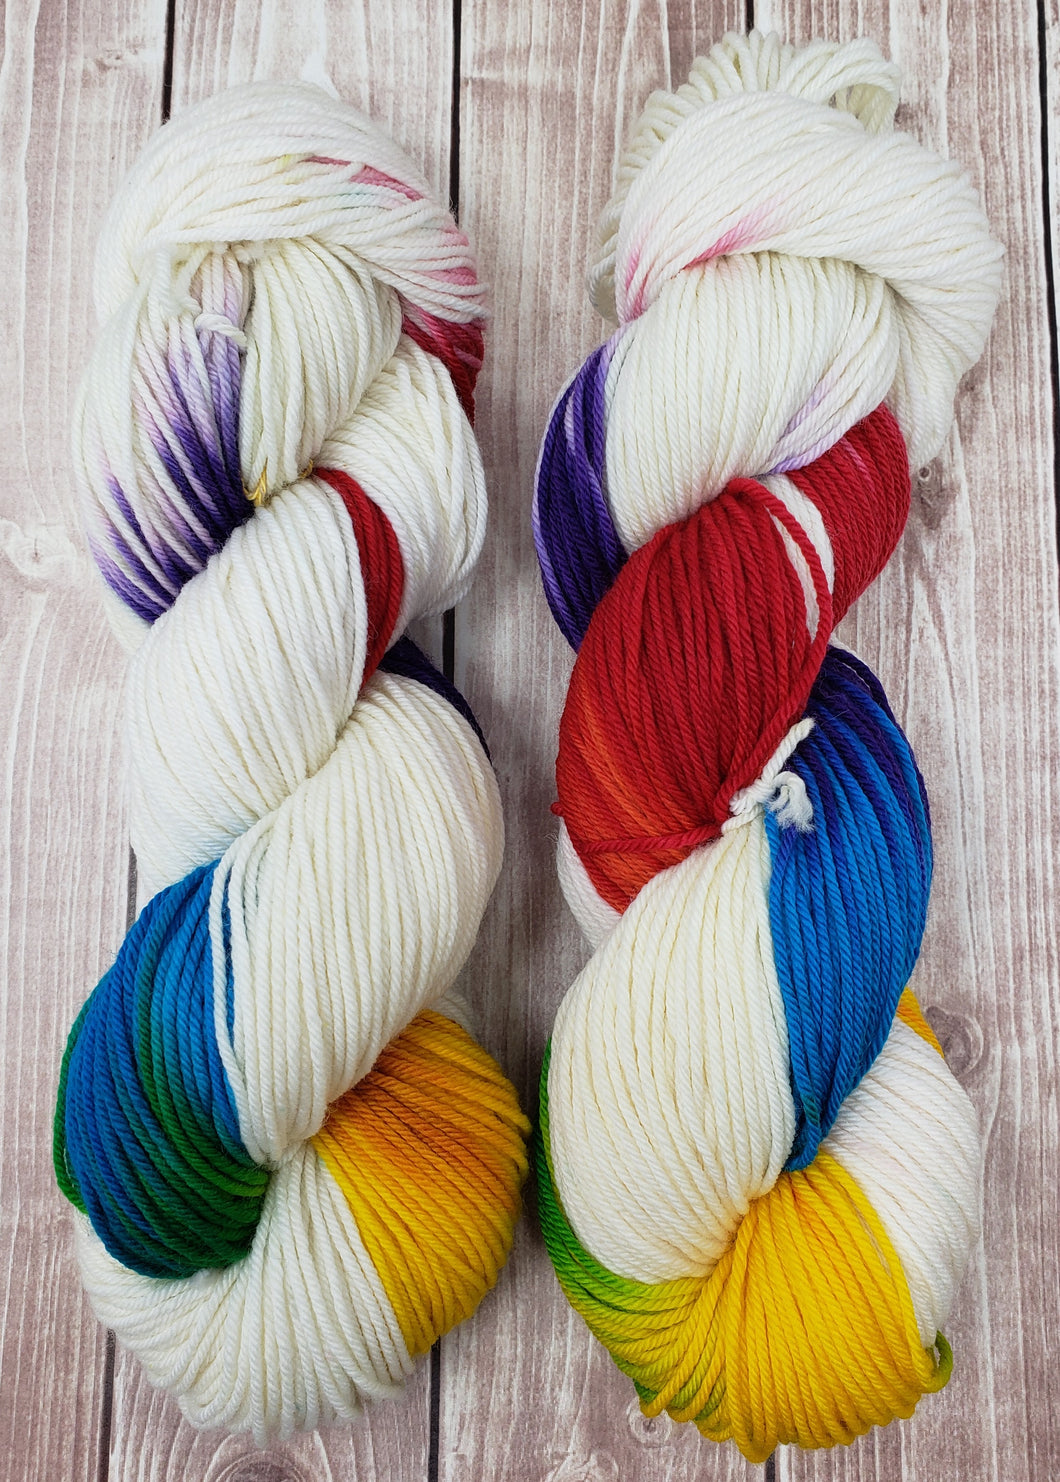 Prism - DK Weight - Hand Dyed Yarn